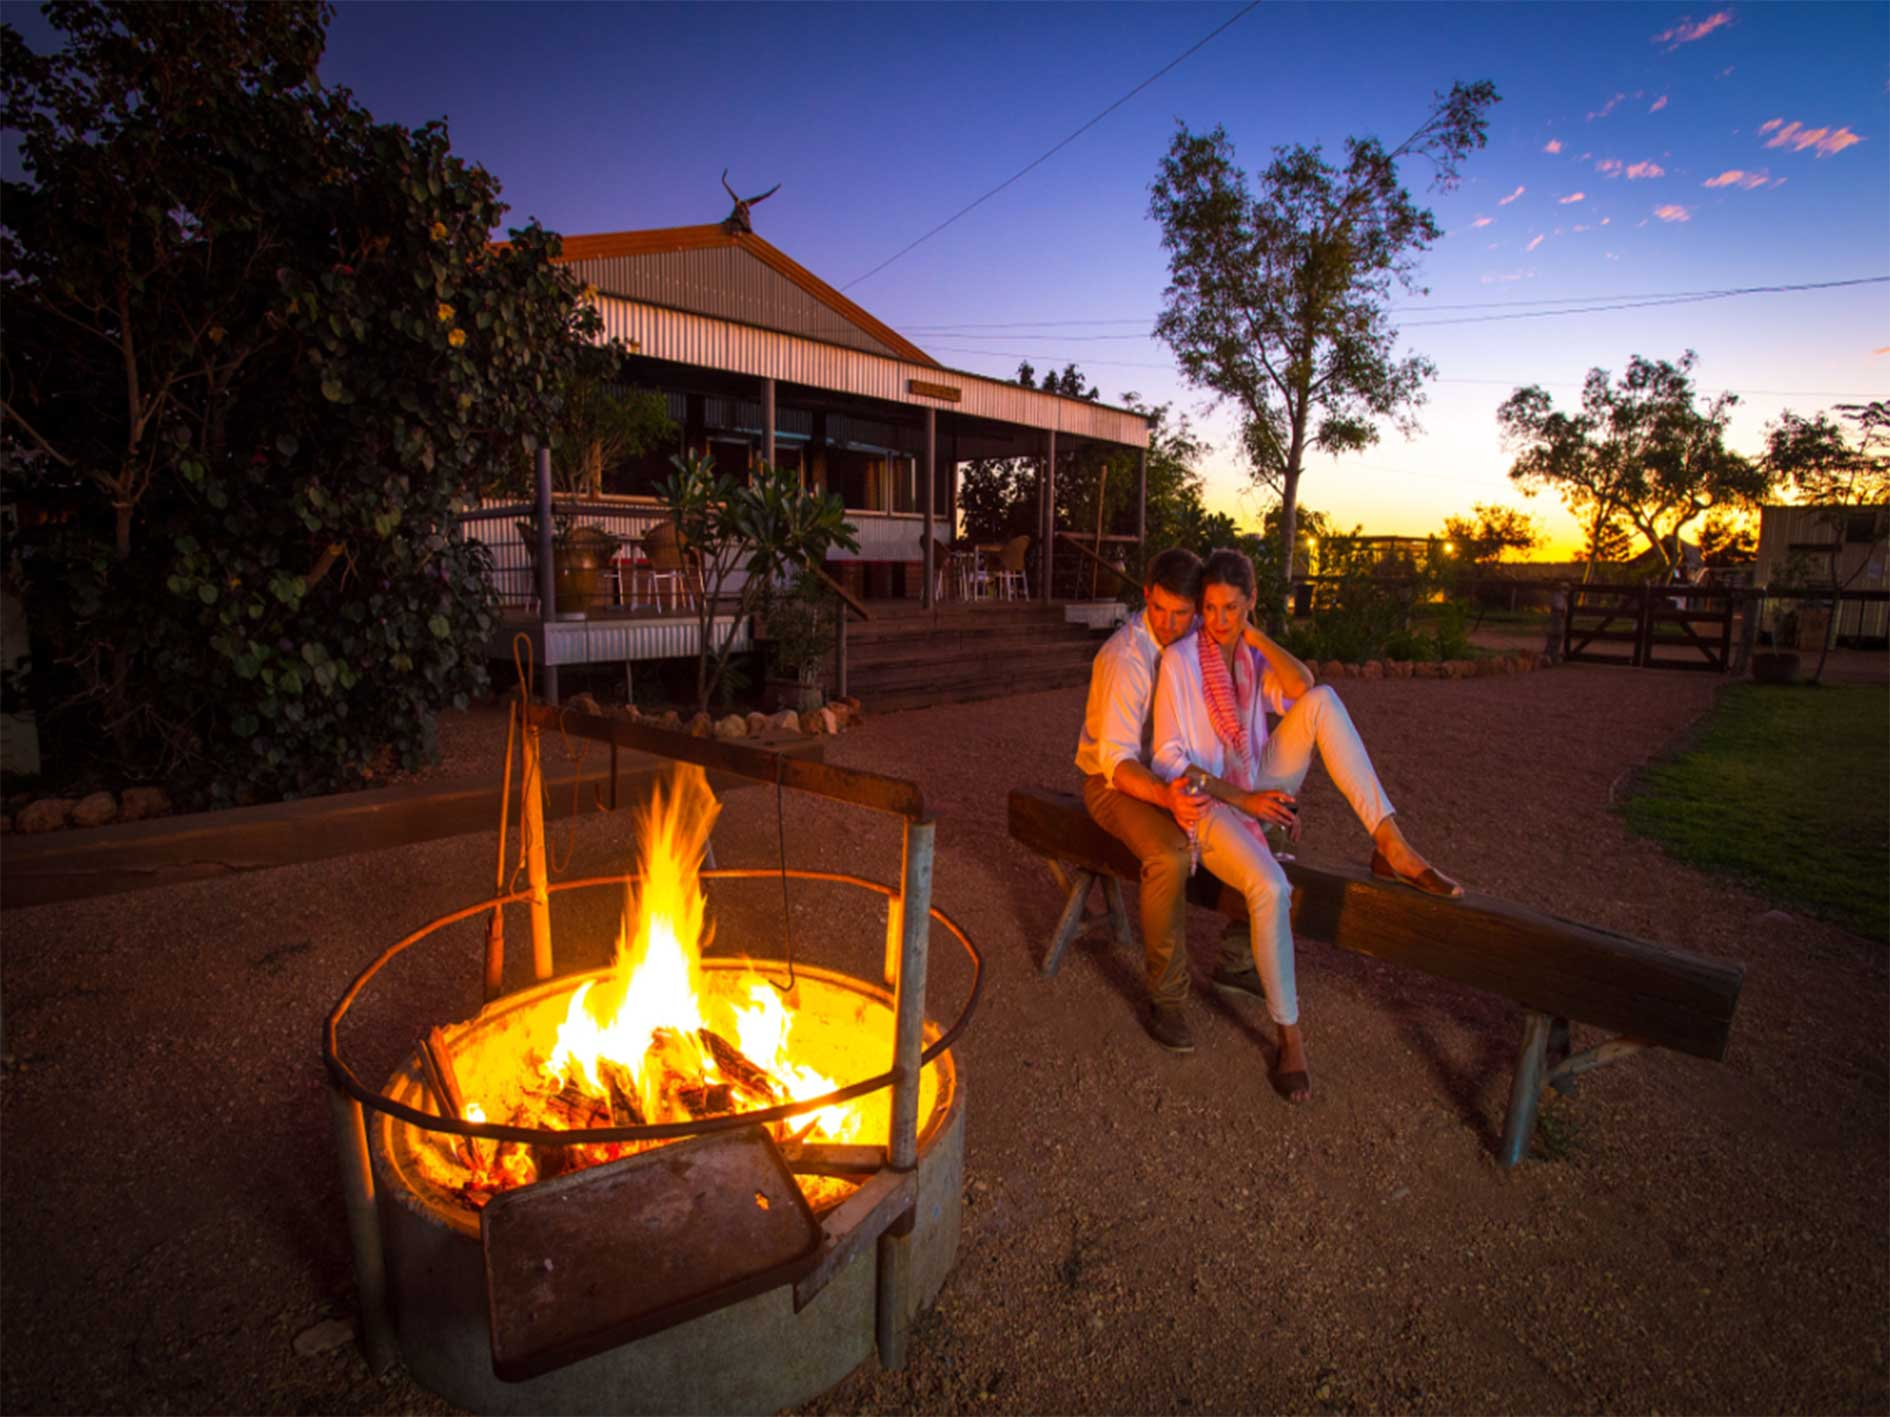 Bullara Station, station stay, outback experience, farm stay, Ningaloo Reef, accommodation, Exmouth, Western Australia, Exmouth Adventure Co, Our Partners